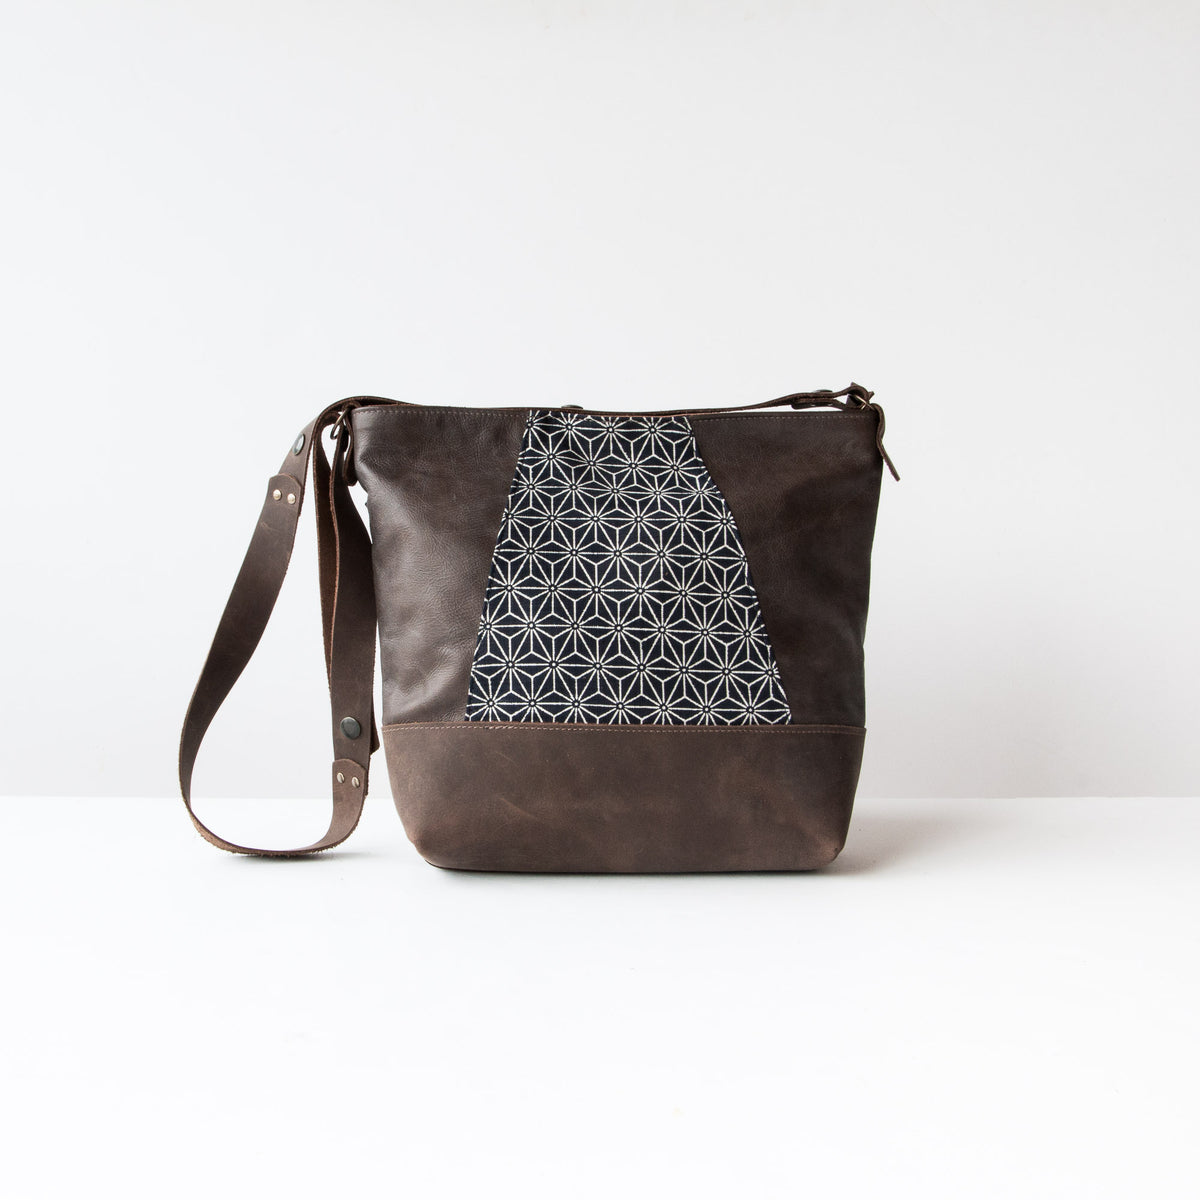 Front View - Yupik - Adjustable Leather Shoulder Bag with Japanese Fabric - Sold by Chic & Basta